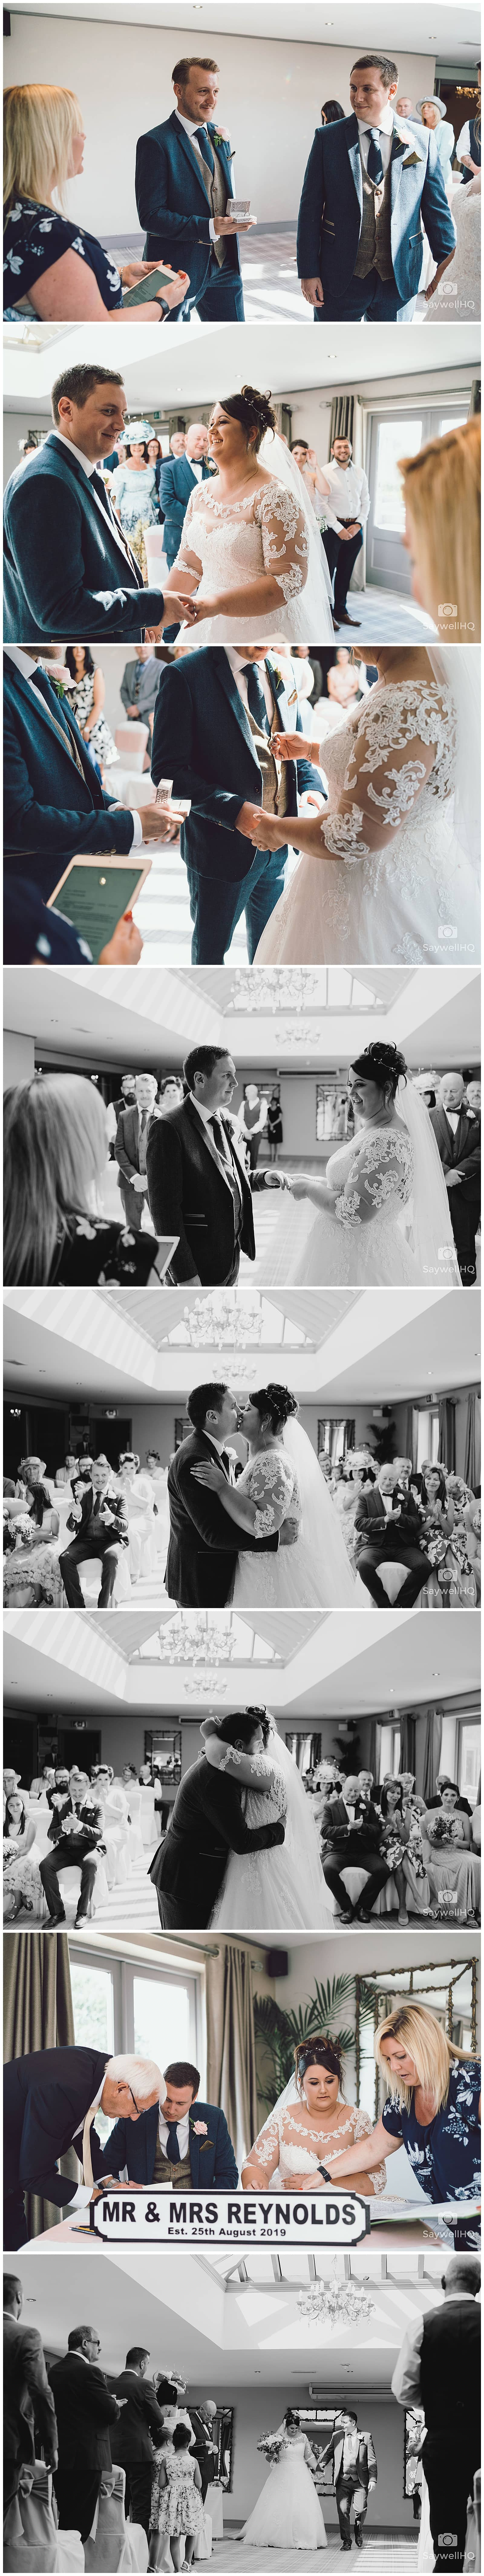 PEAK EDGE HOTEL WEDDING PHOTOGRAPHY - bride and groom first kiss during wedding at the peak edge hotel